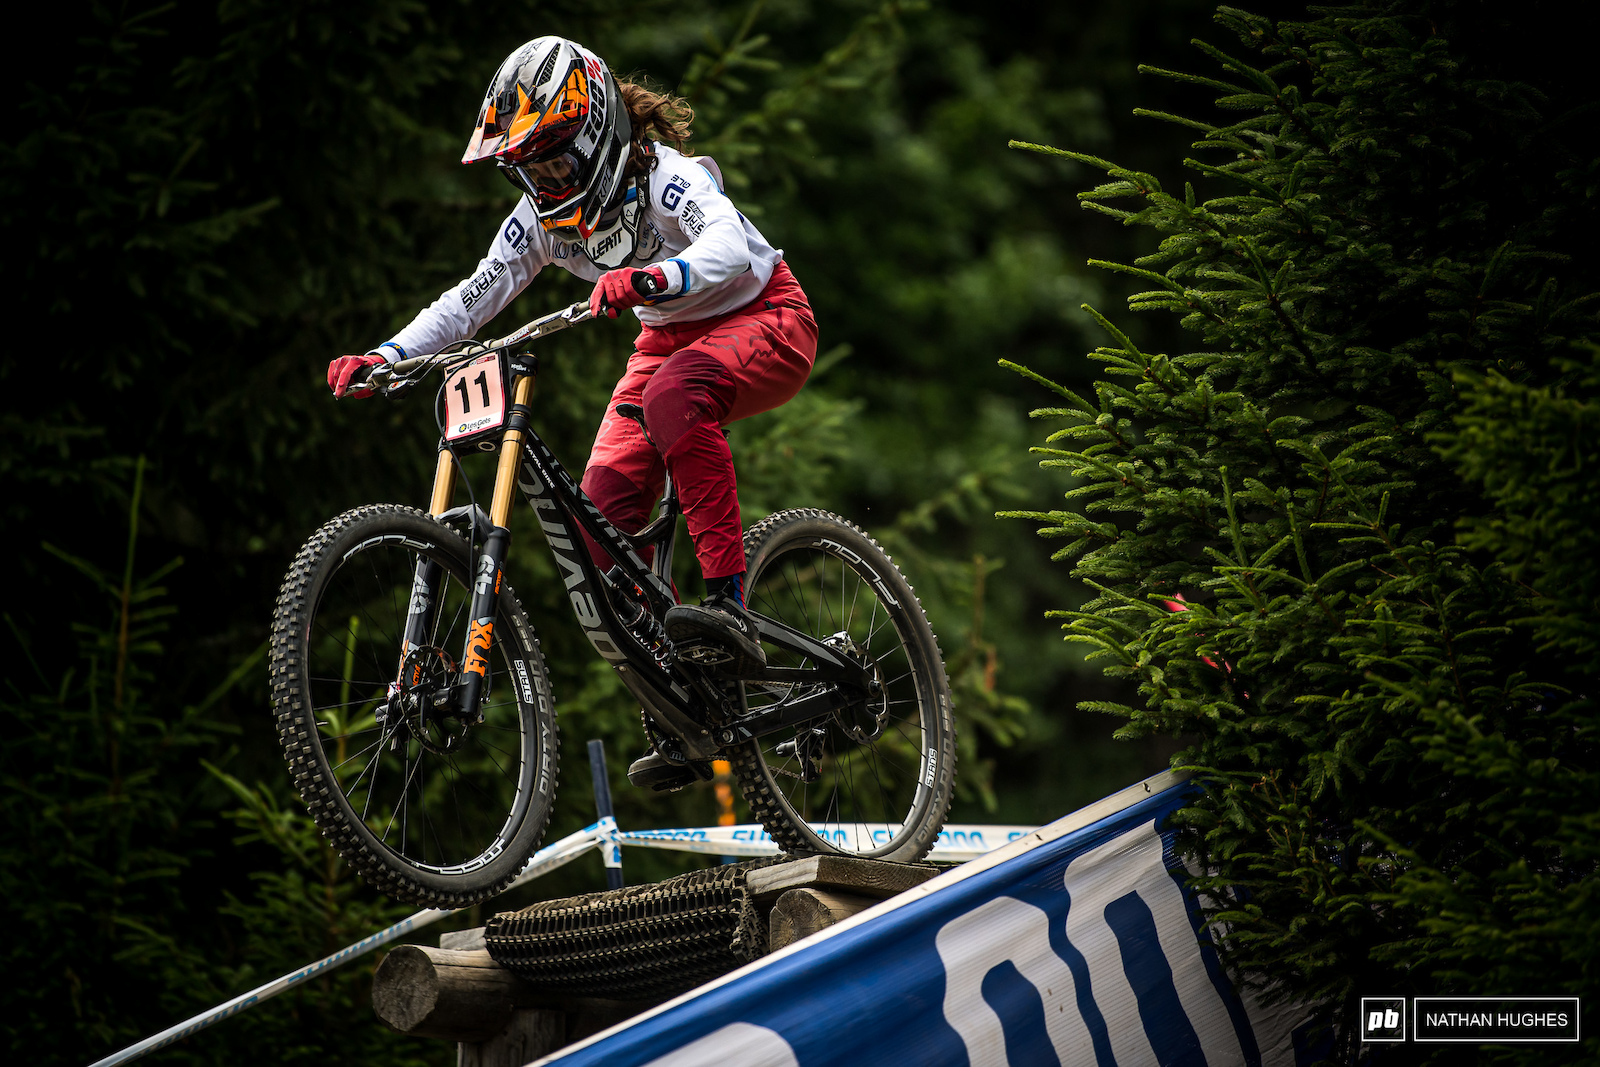 Camille Balanche could be on for the podium. 5th today with 2 seconds to spare.